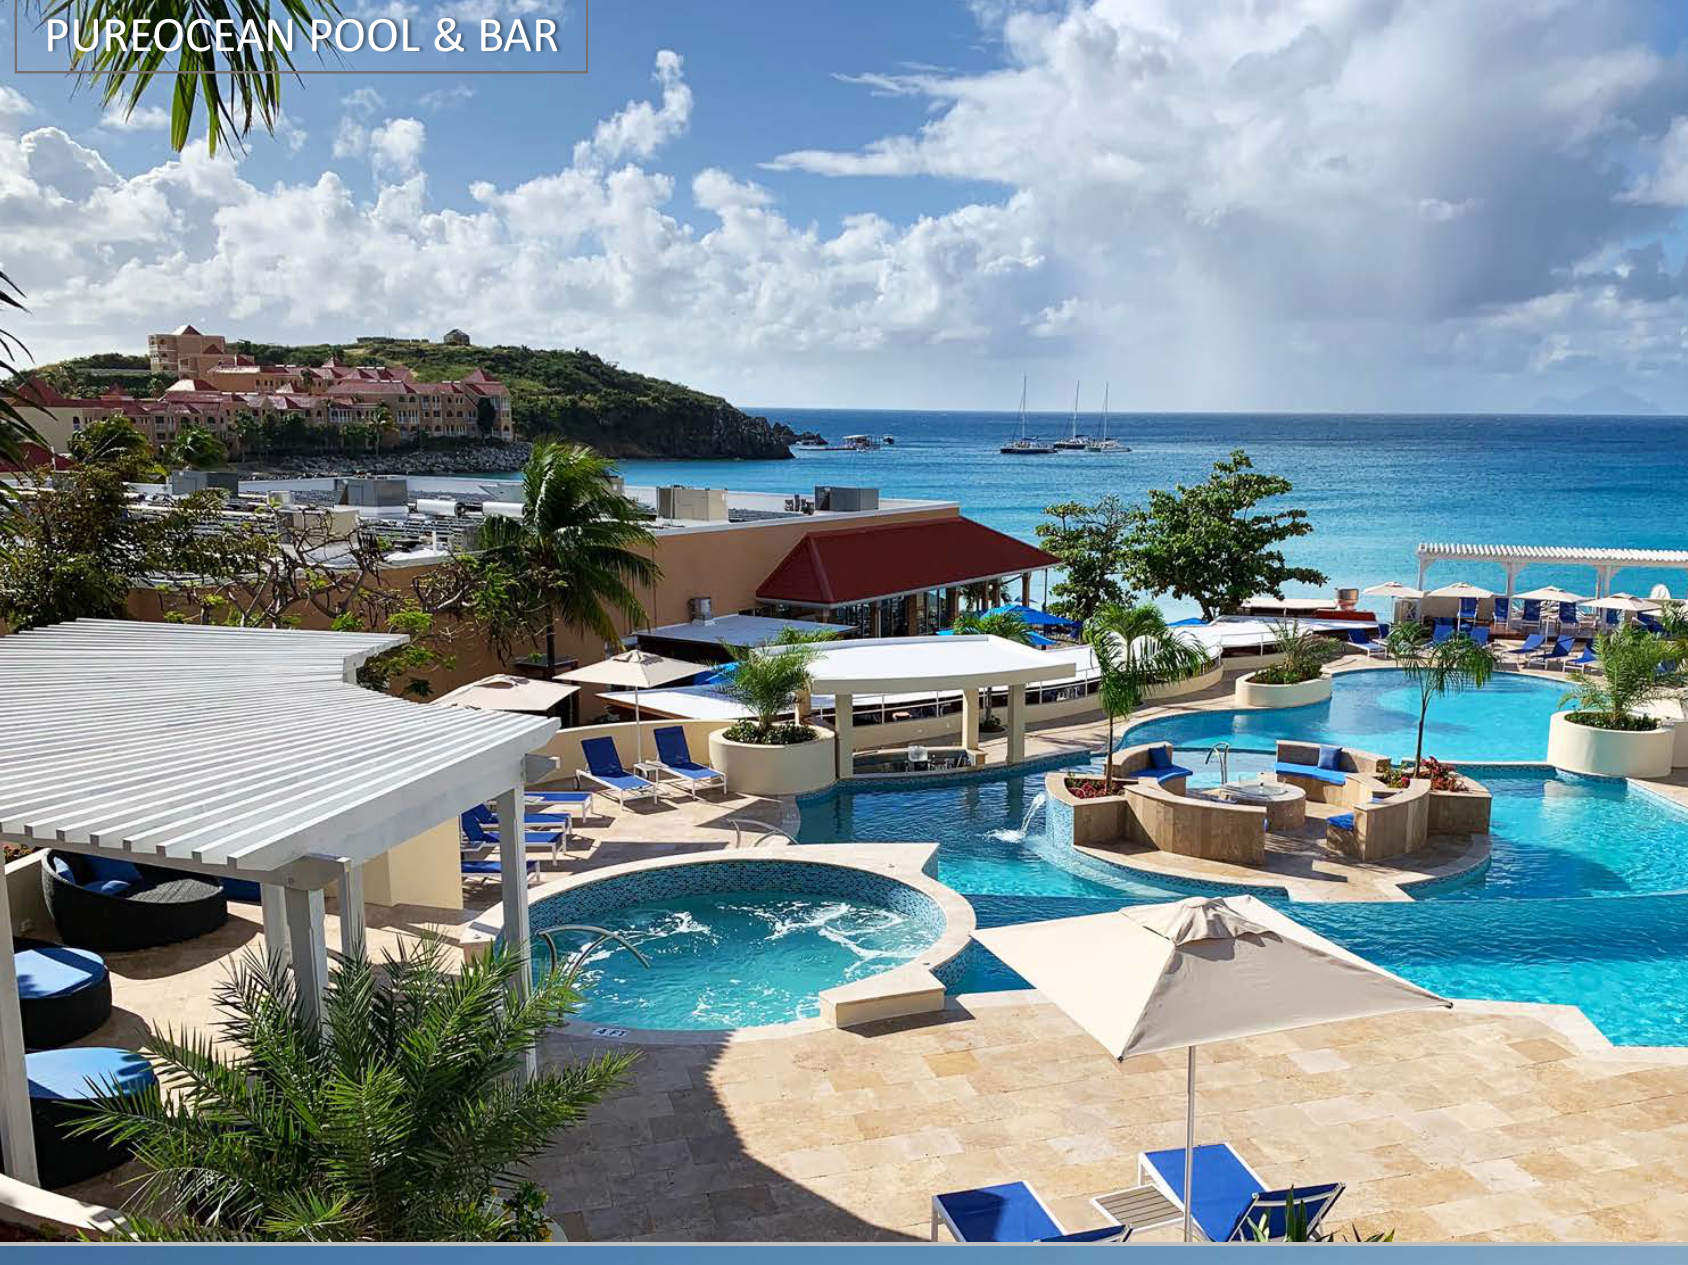 Divi Little Bay Beach & Racquet Club image